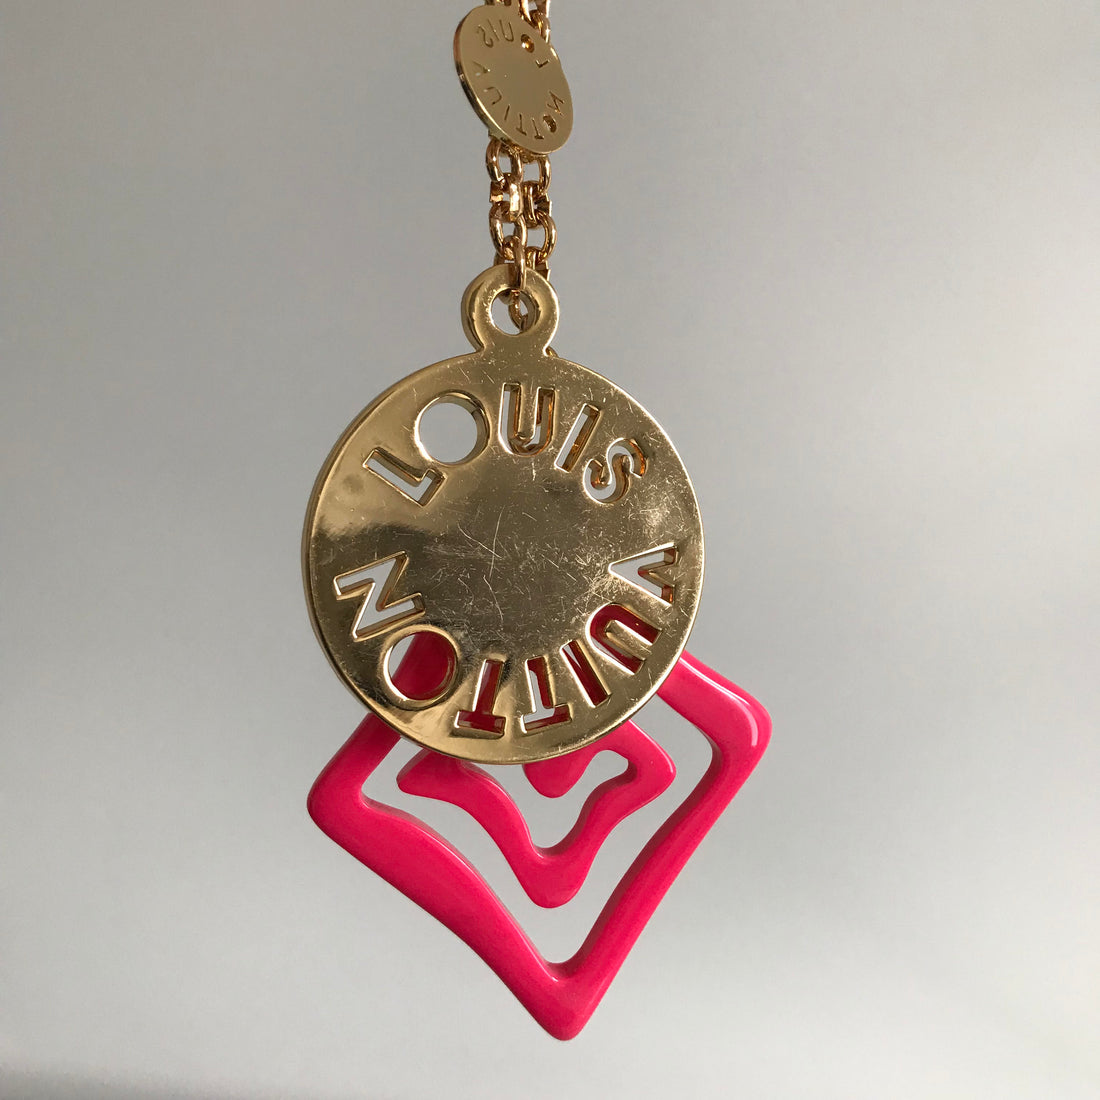 Louis Vuitton Pink Acrylic and Gold Logo Medallion Key Chain